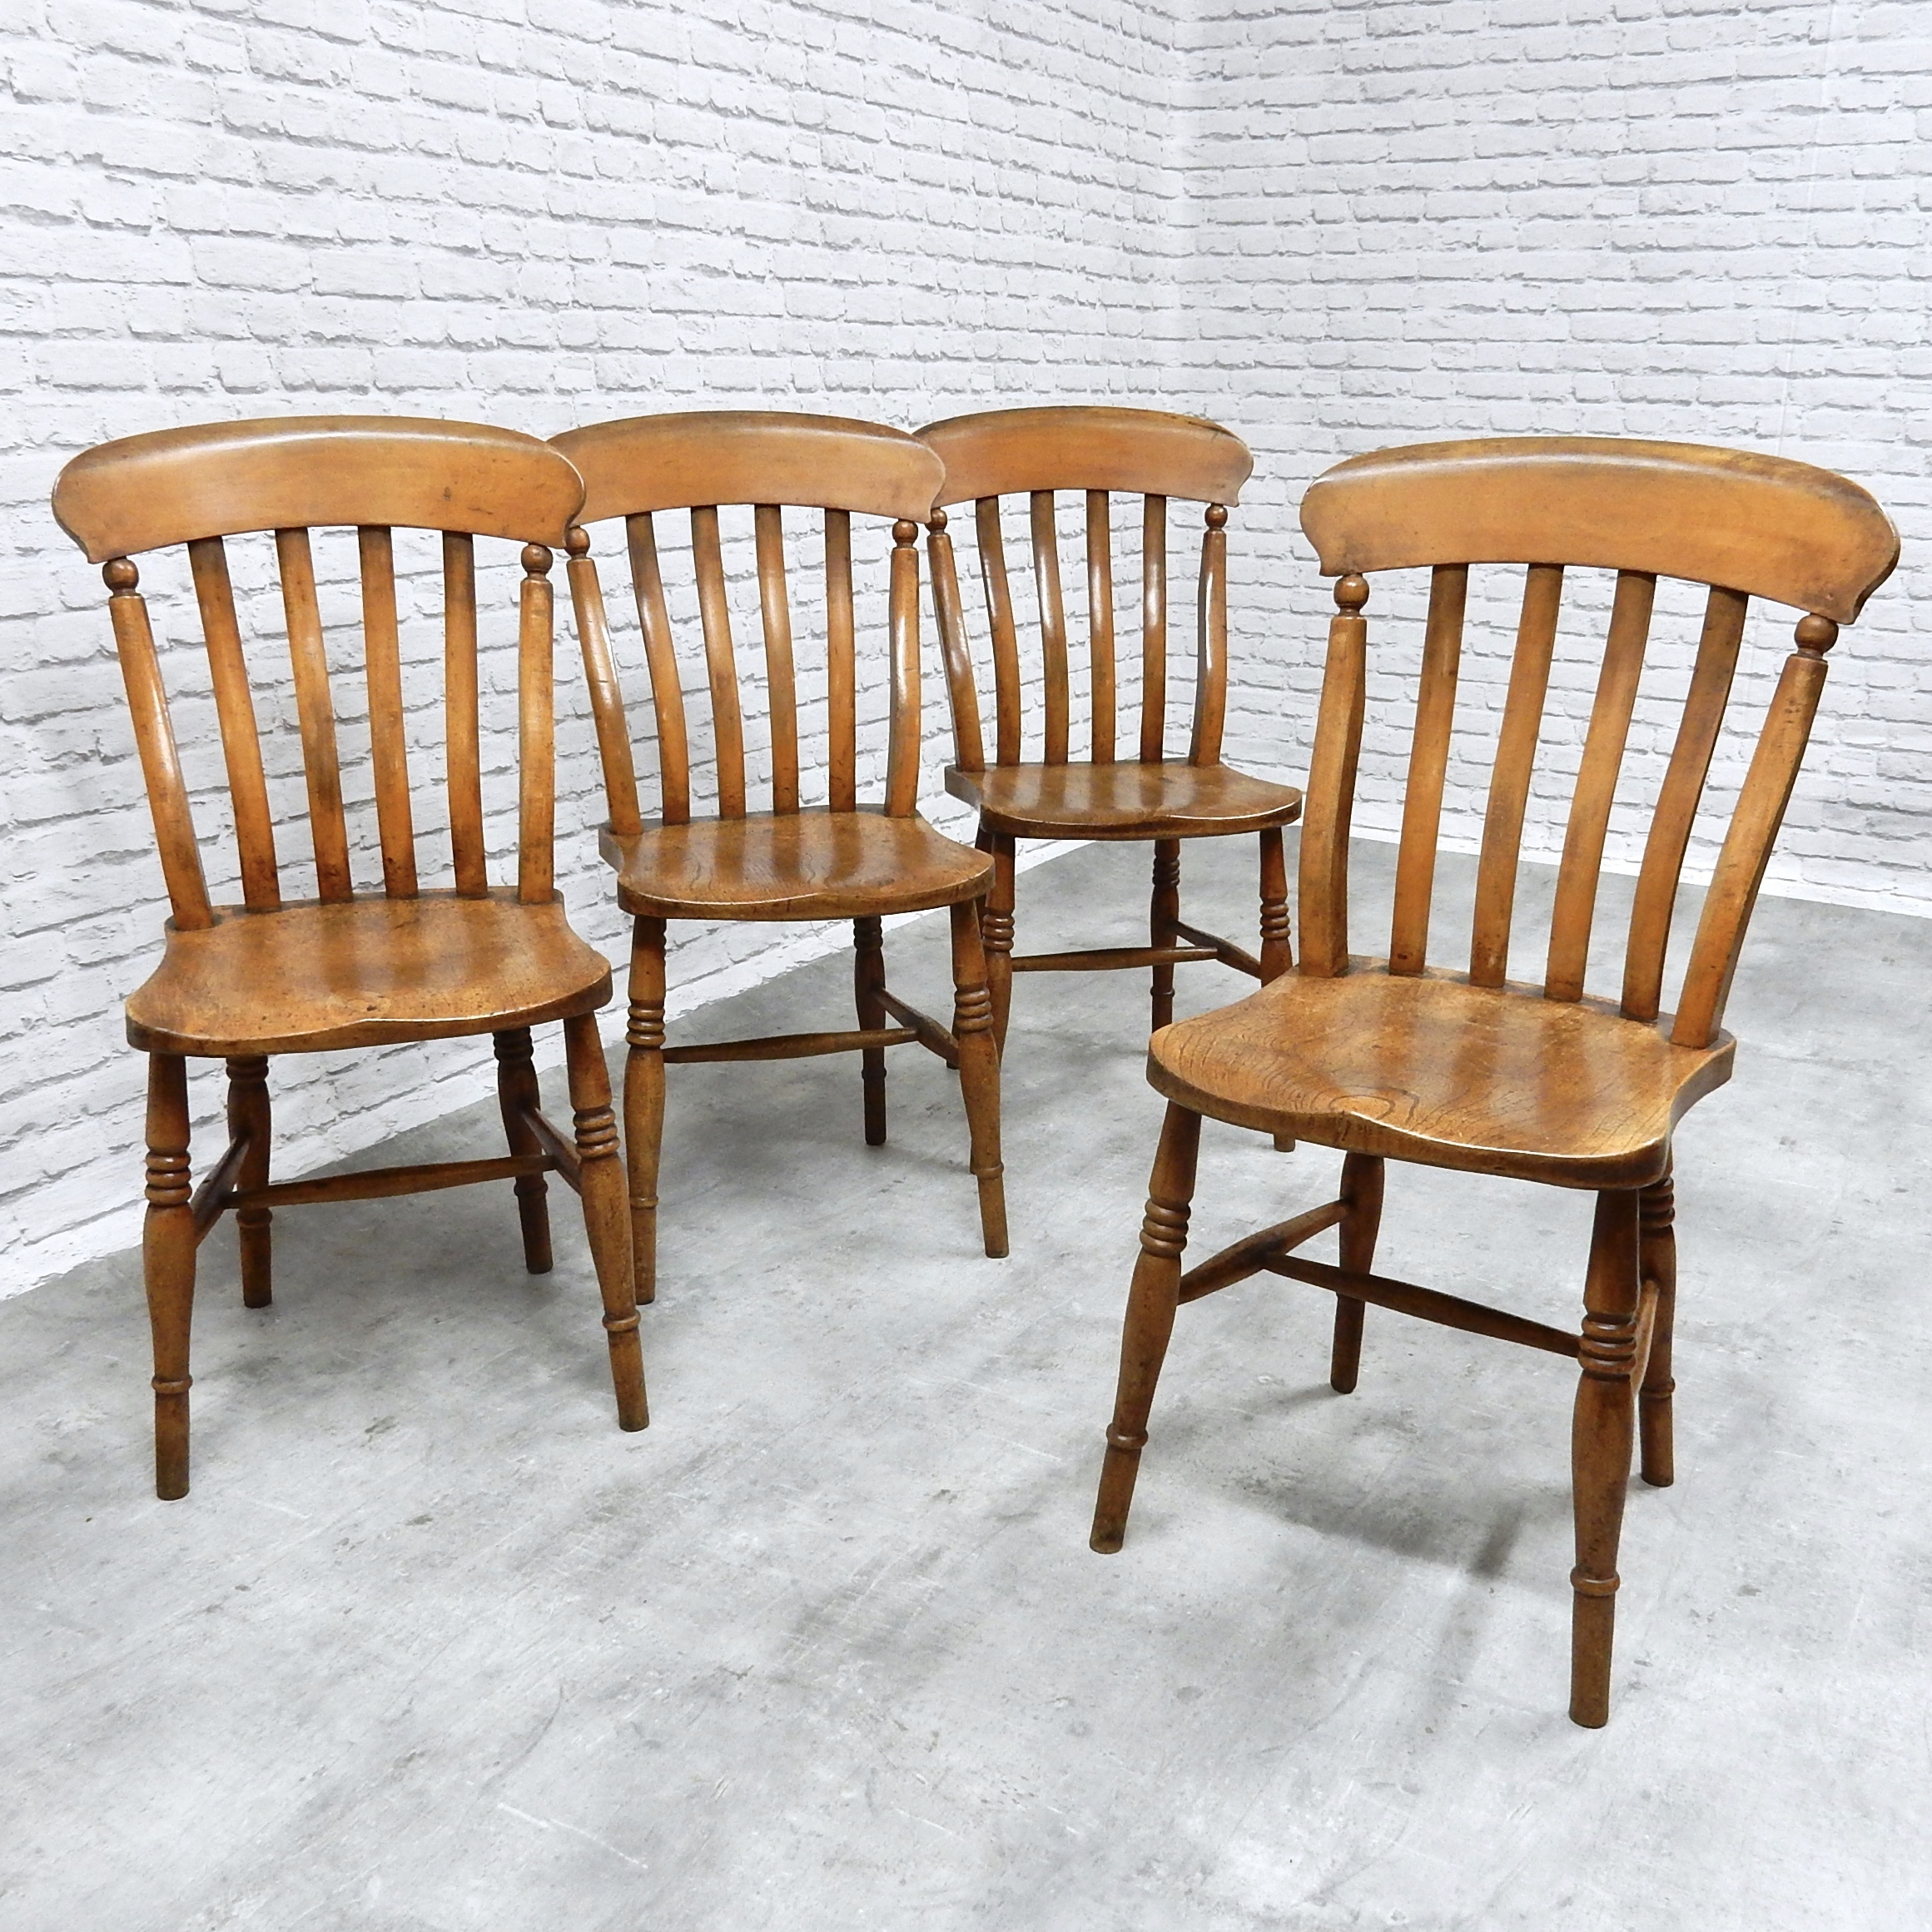 Set Of 4 Kitchen Chairs Set Of 4 Antique Kitchen Chairs